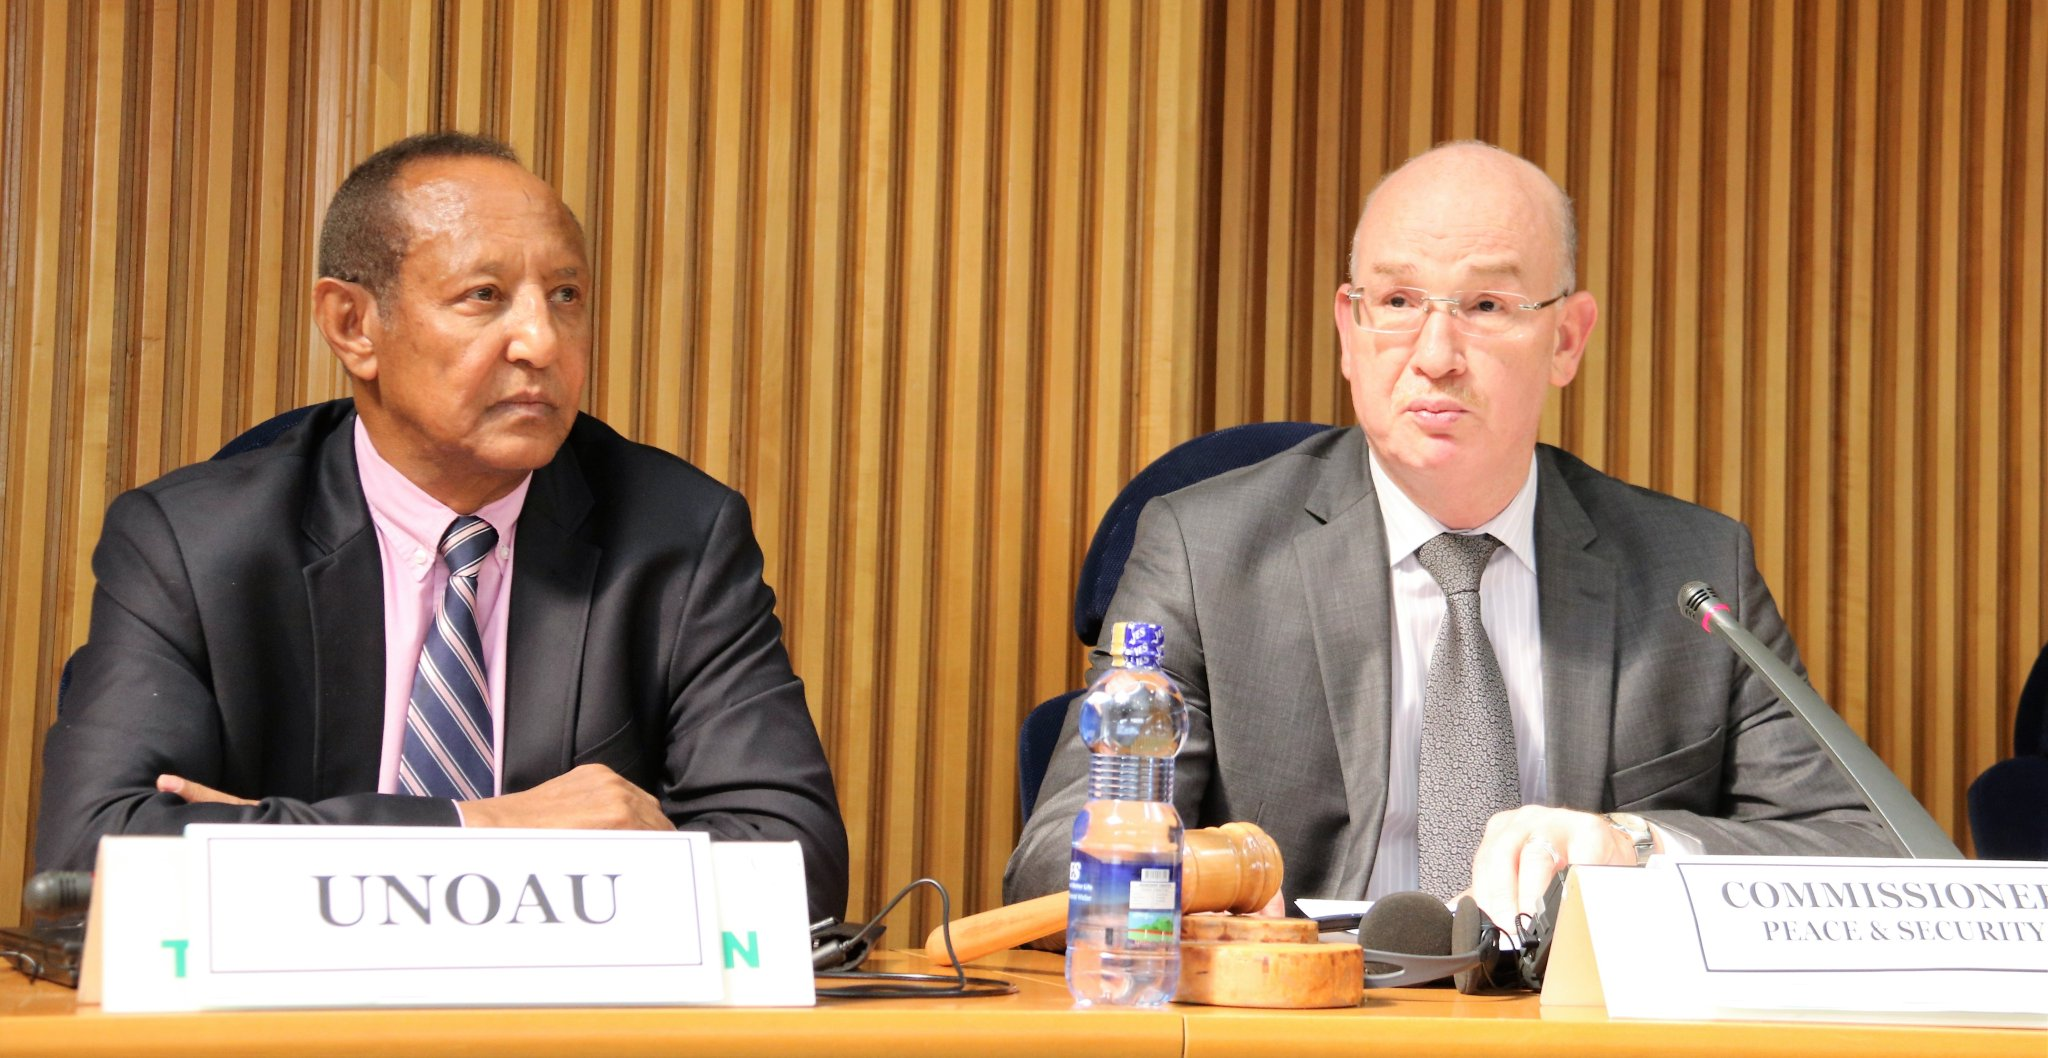 UNOAU SRSG Haile Menkerios (left) and Ambassador Smail Chergui (right) during the opening session of the Seminar on the operationalization of the African Union Mediation  Support Unit